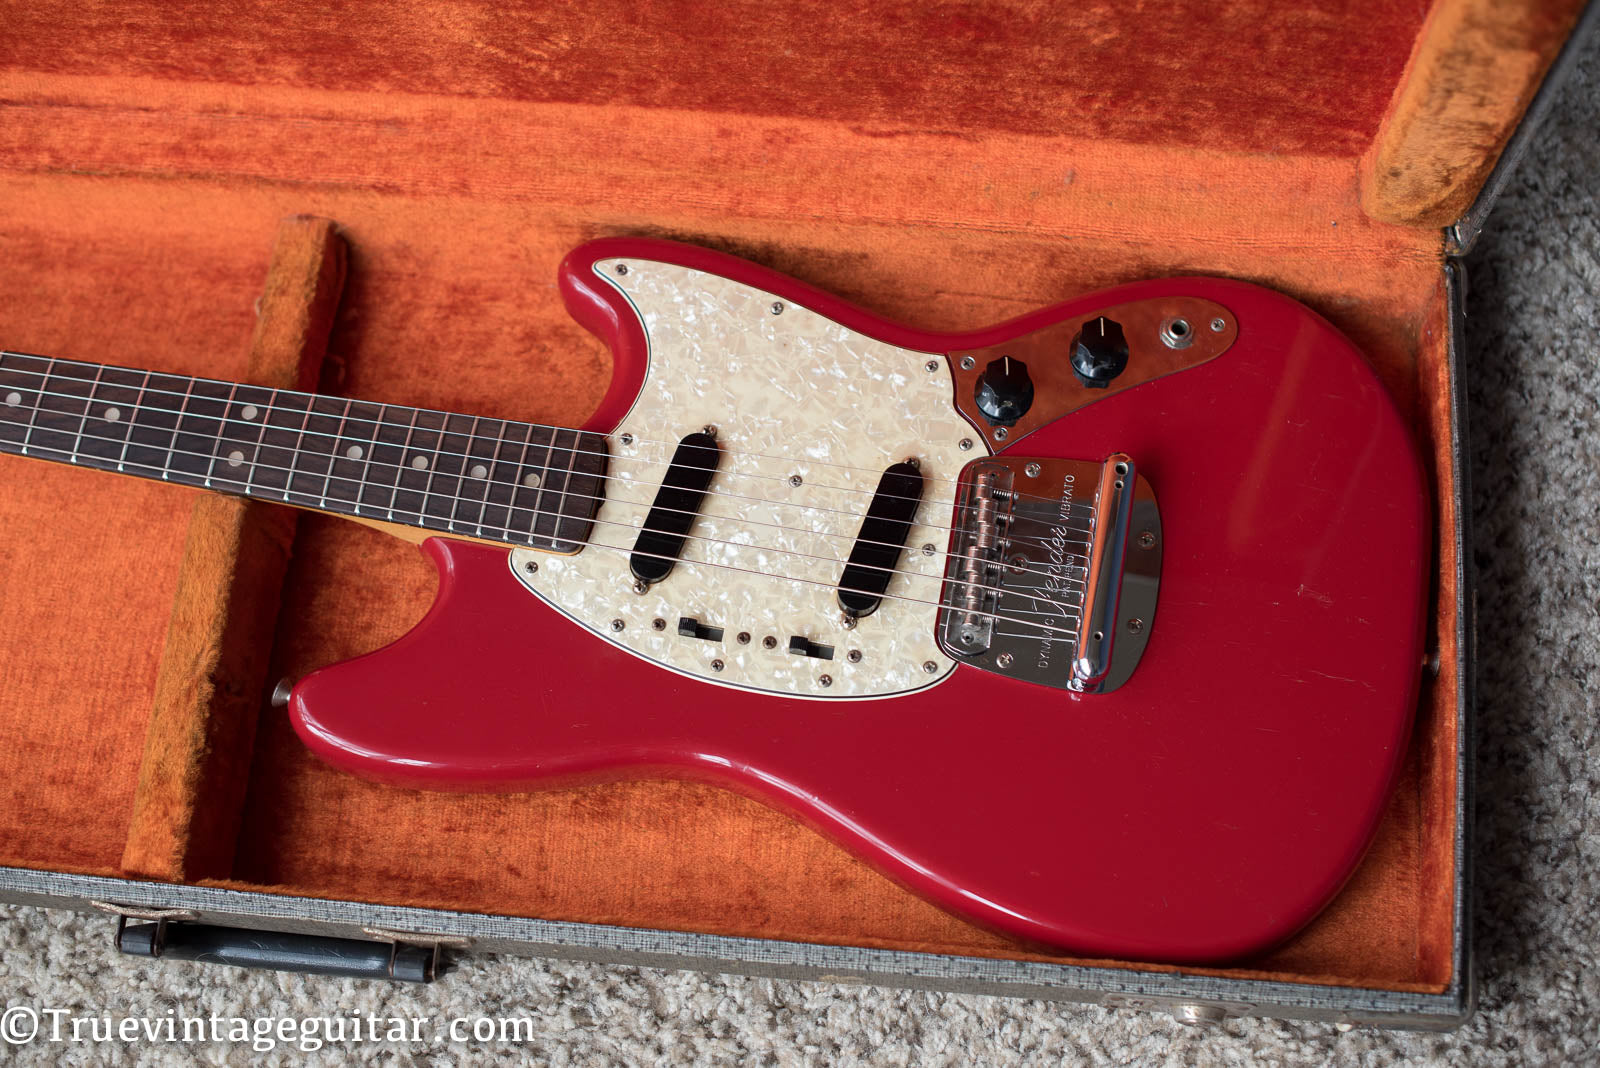 Fender Mustang electric guitar red